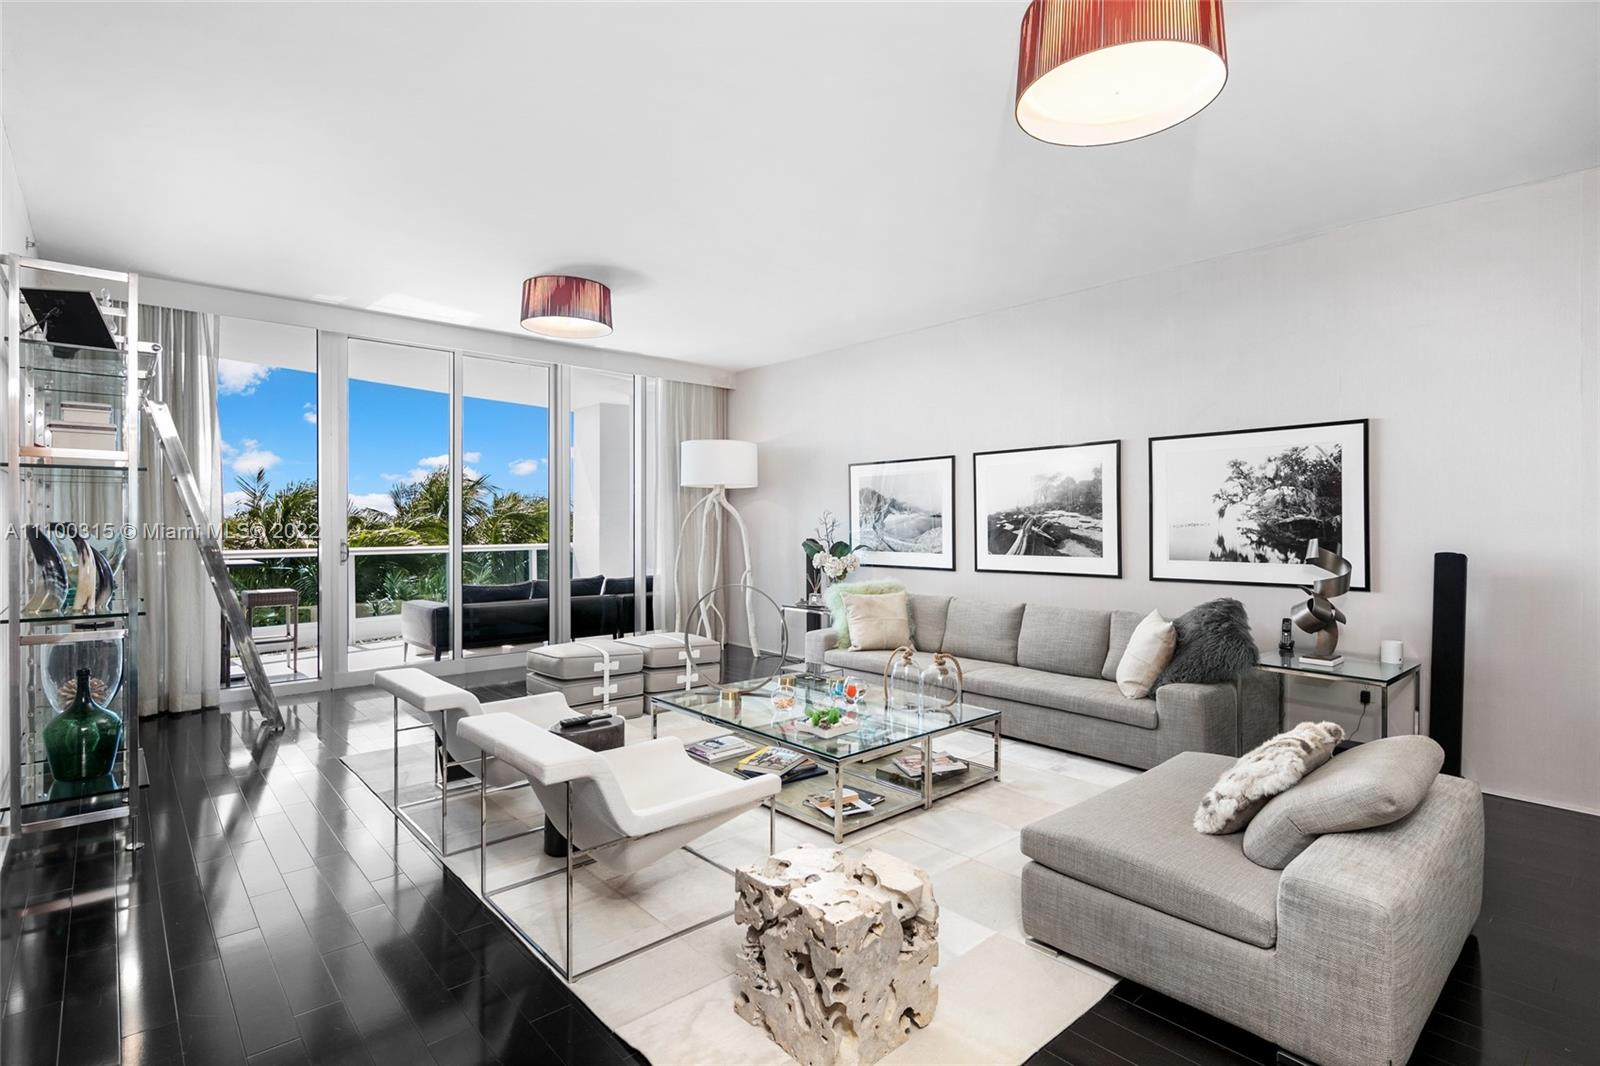 Listing Image 5959 Collins Ave #704